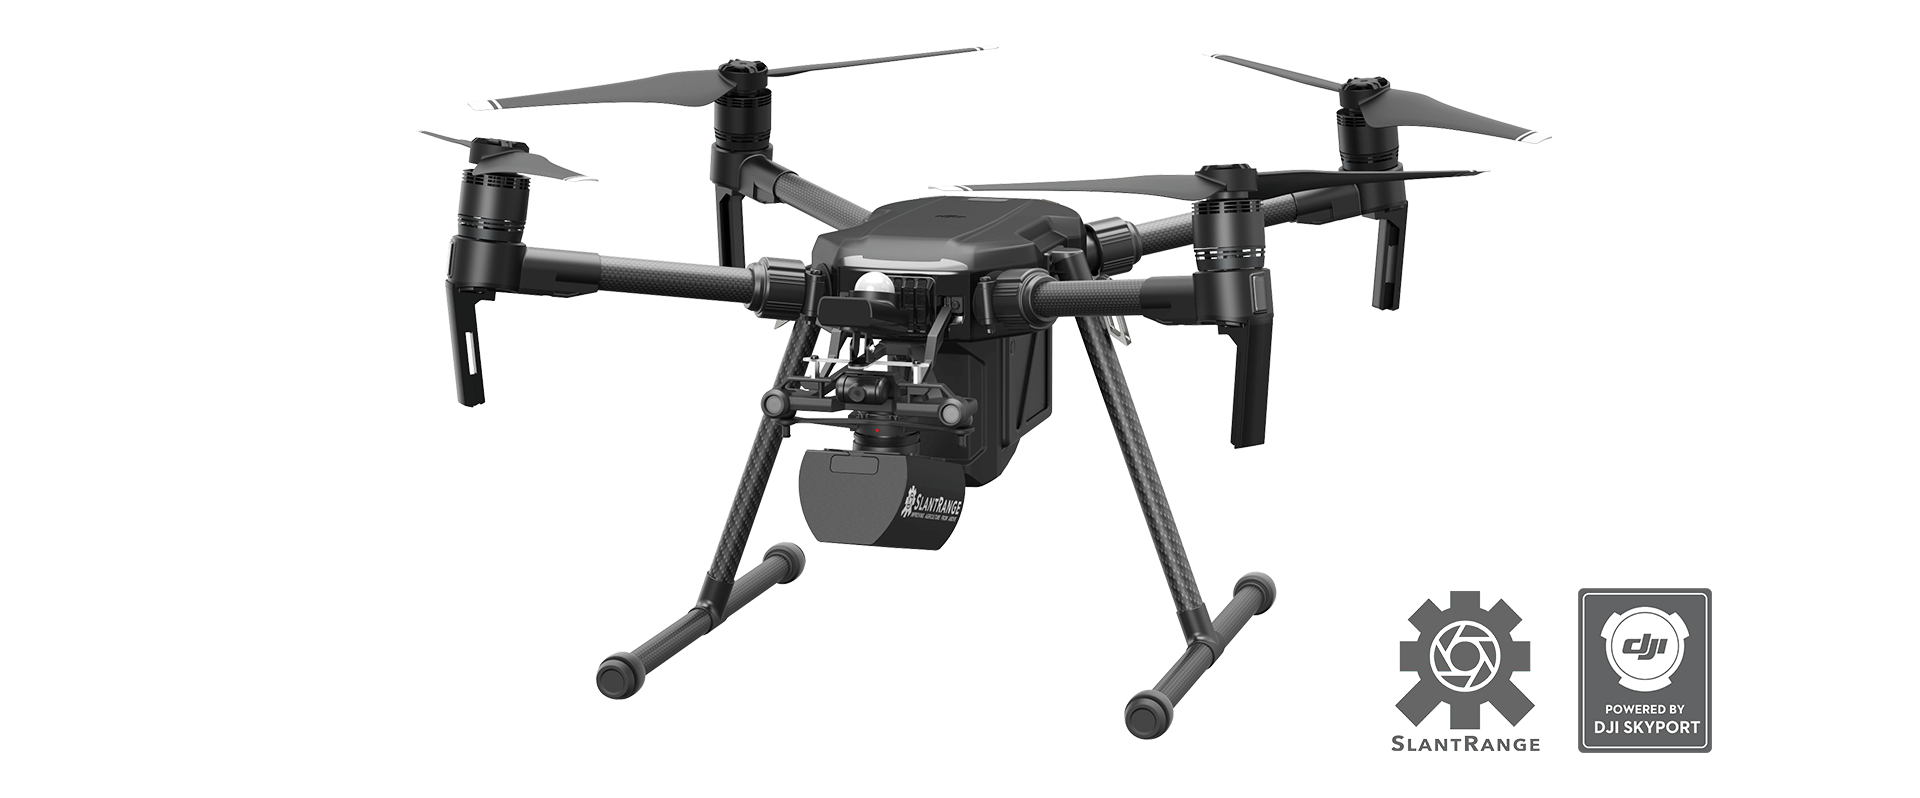 Slantrange Announces The 3px For Dji Matrice 200 Series Drones